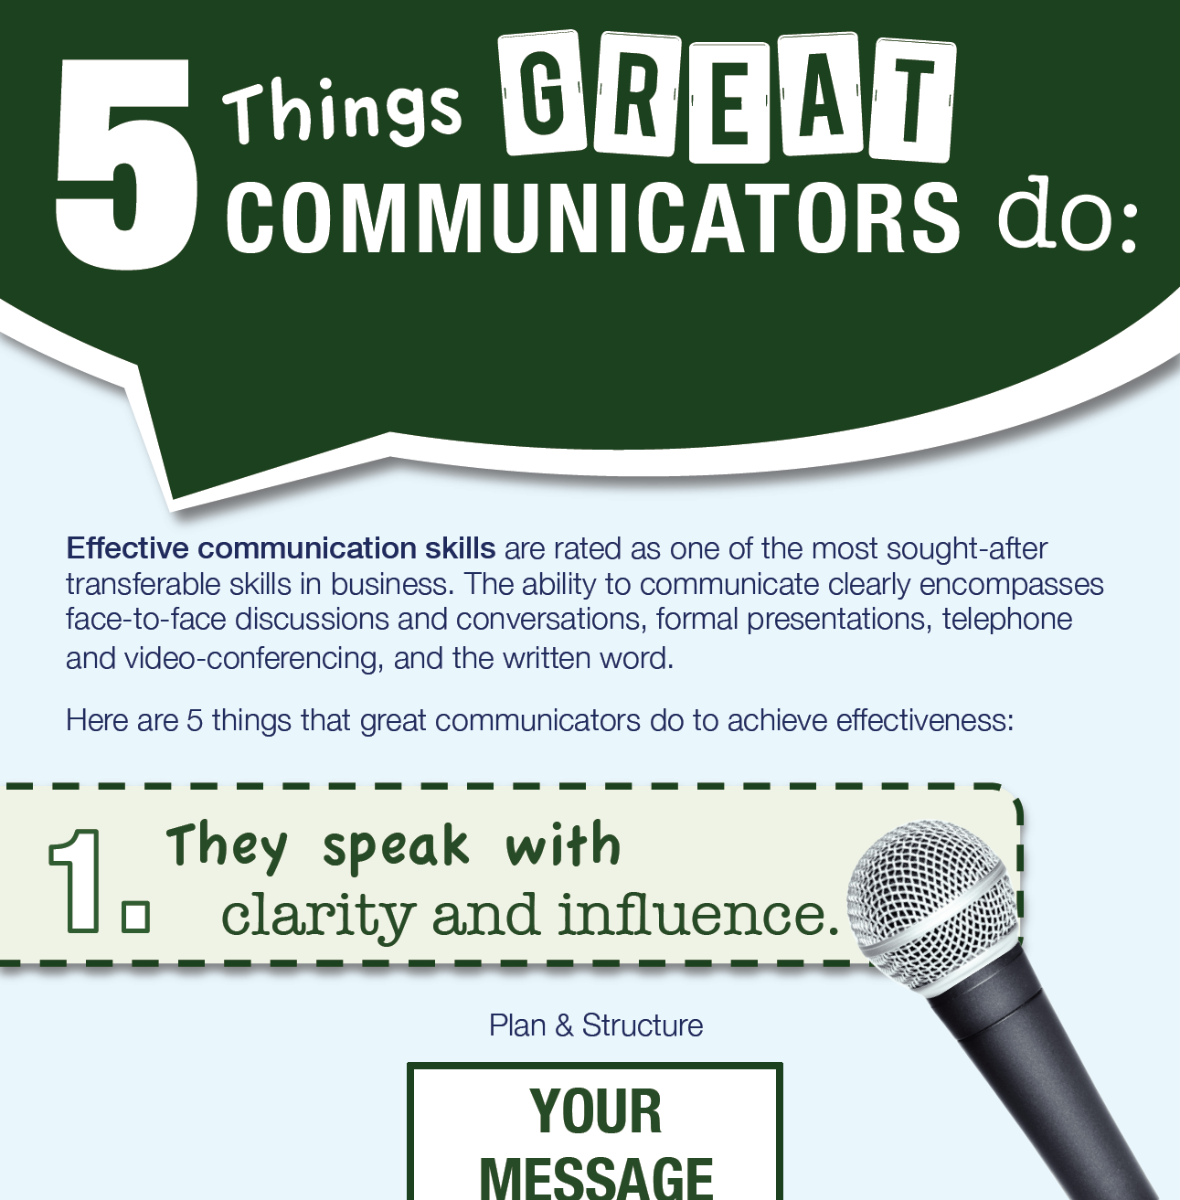 5 Things Great Communicators Do (infographic)